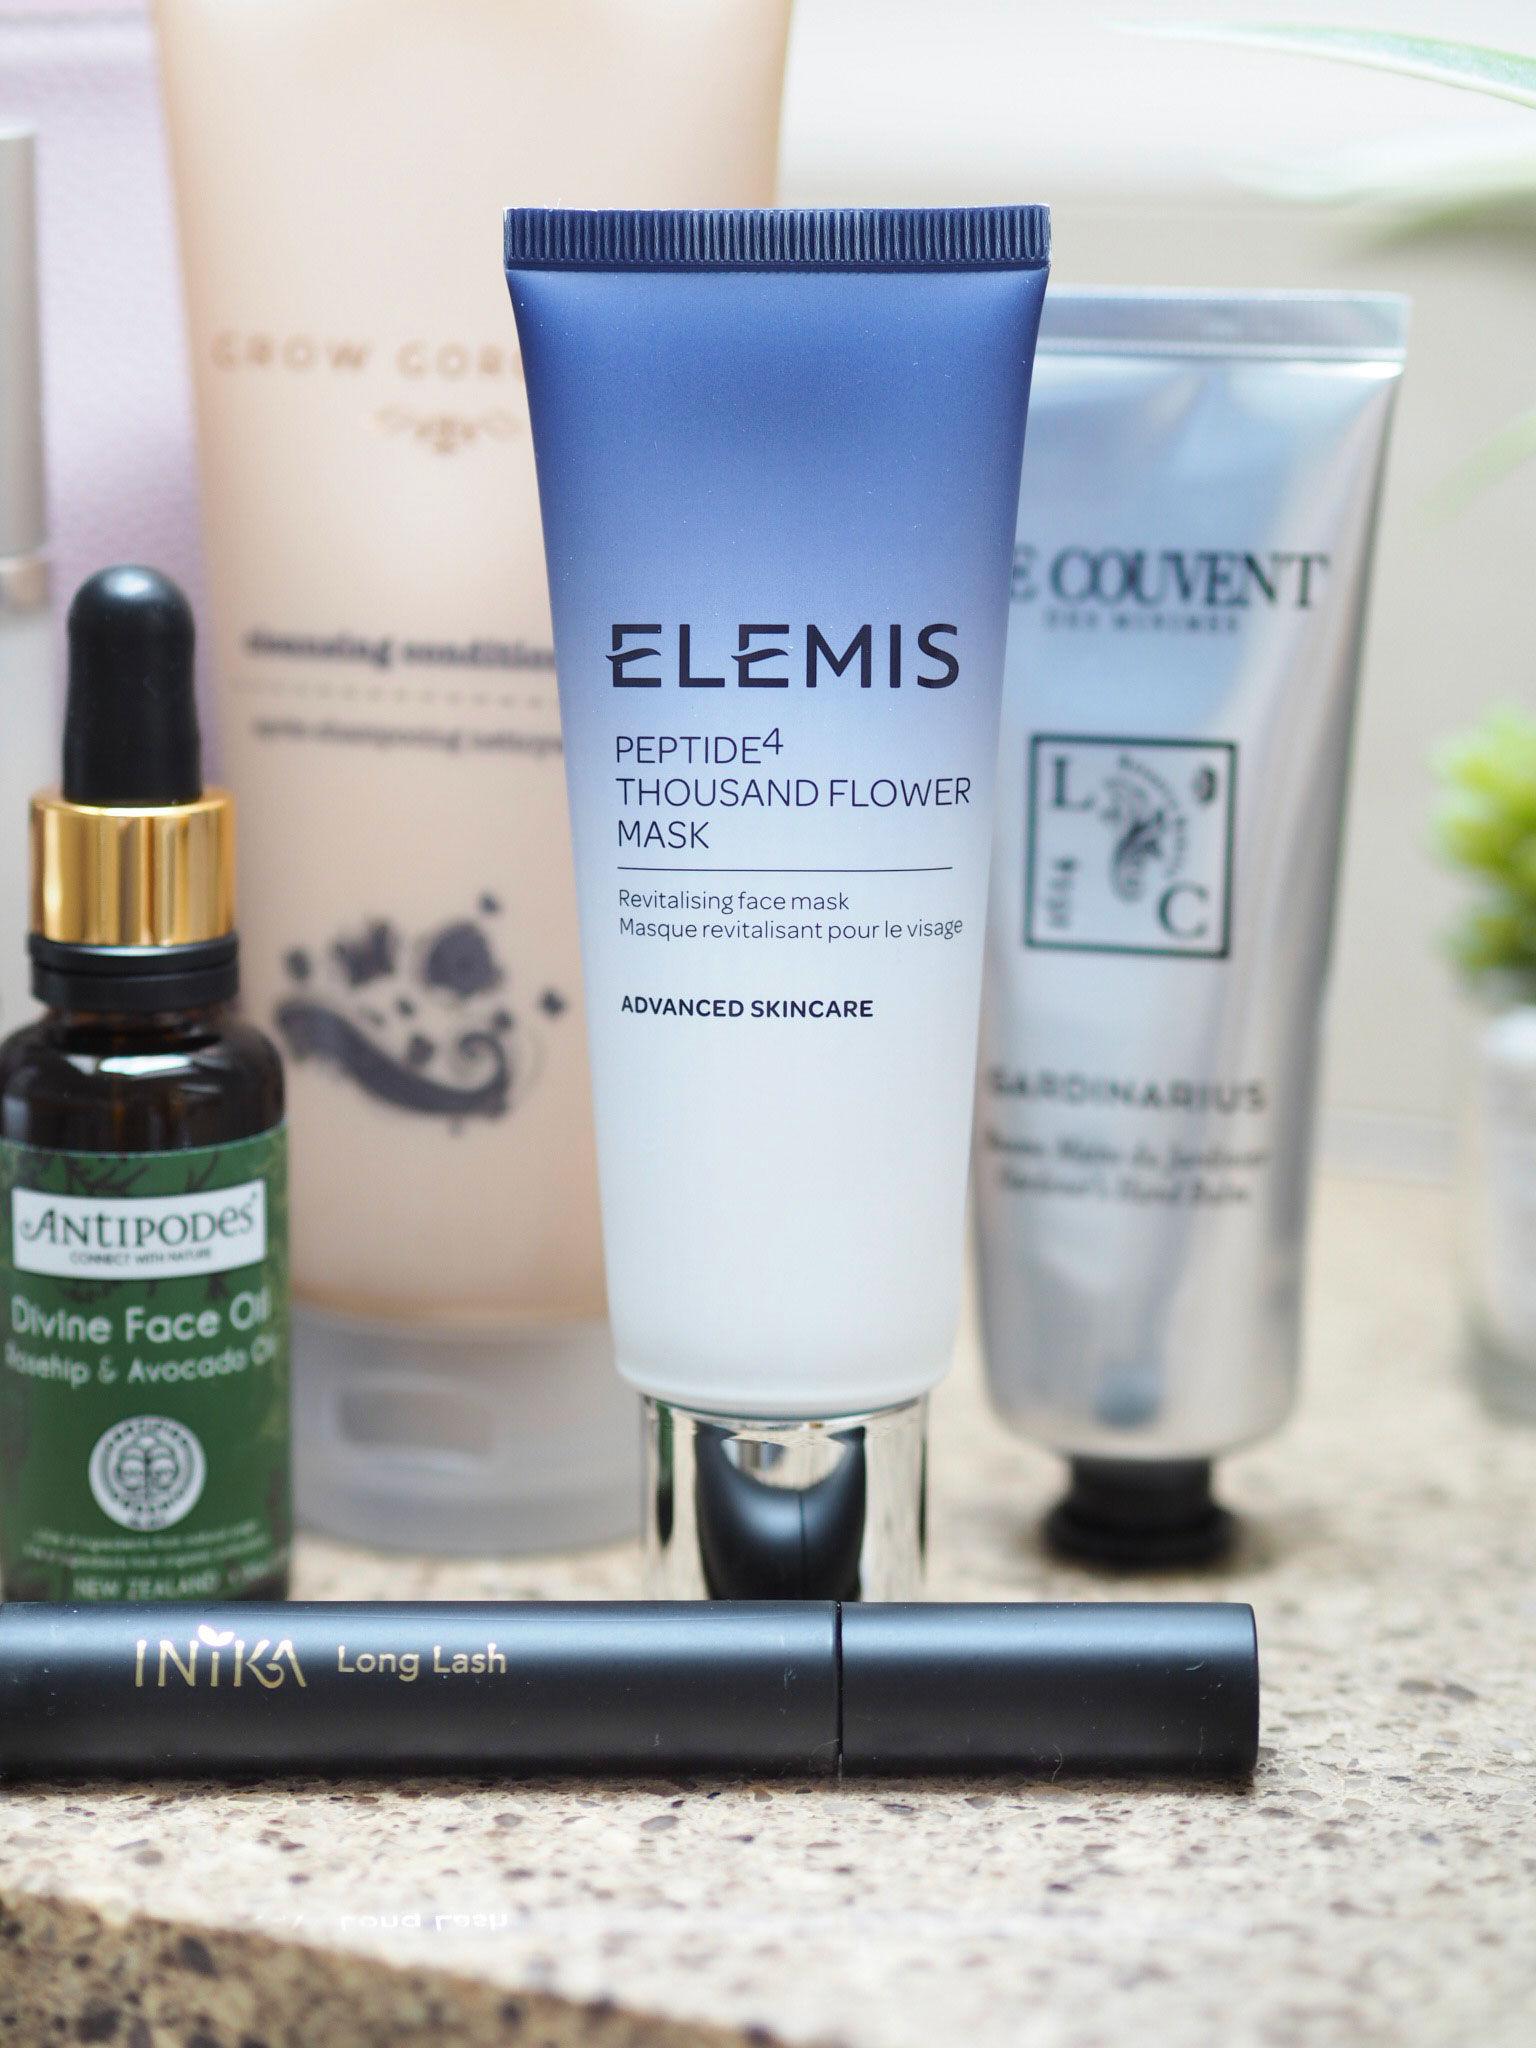 Elemis Peptide4 Thousand Flower Mask and Inika Mascara